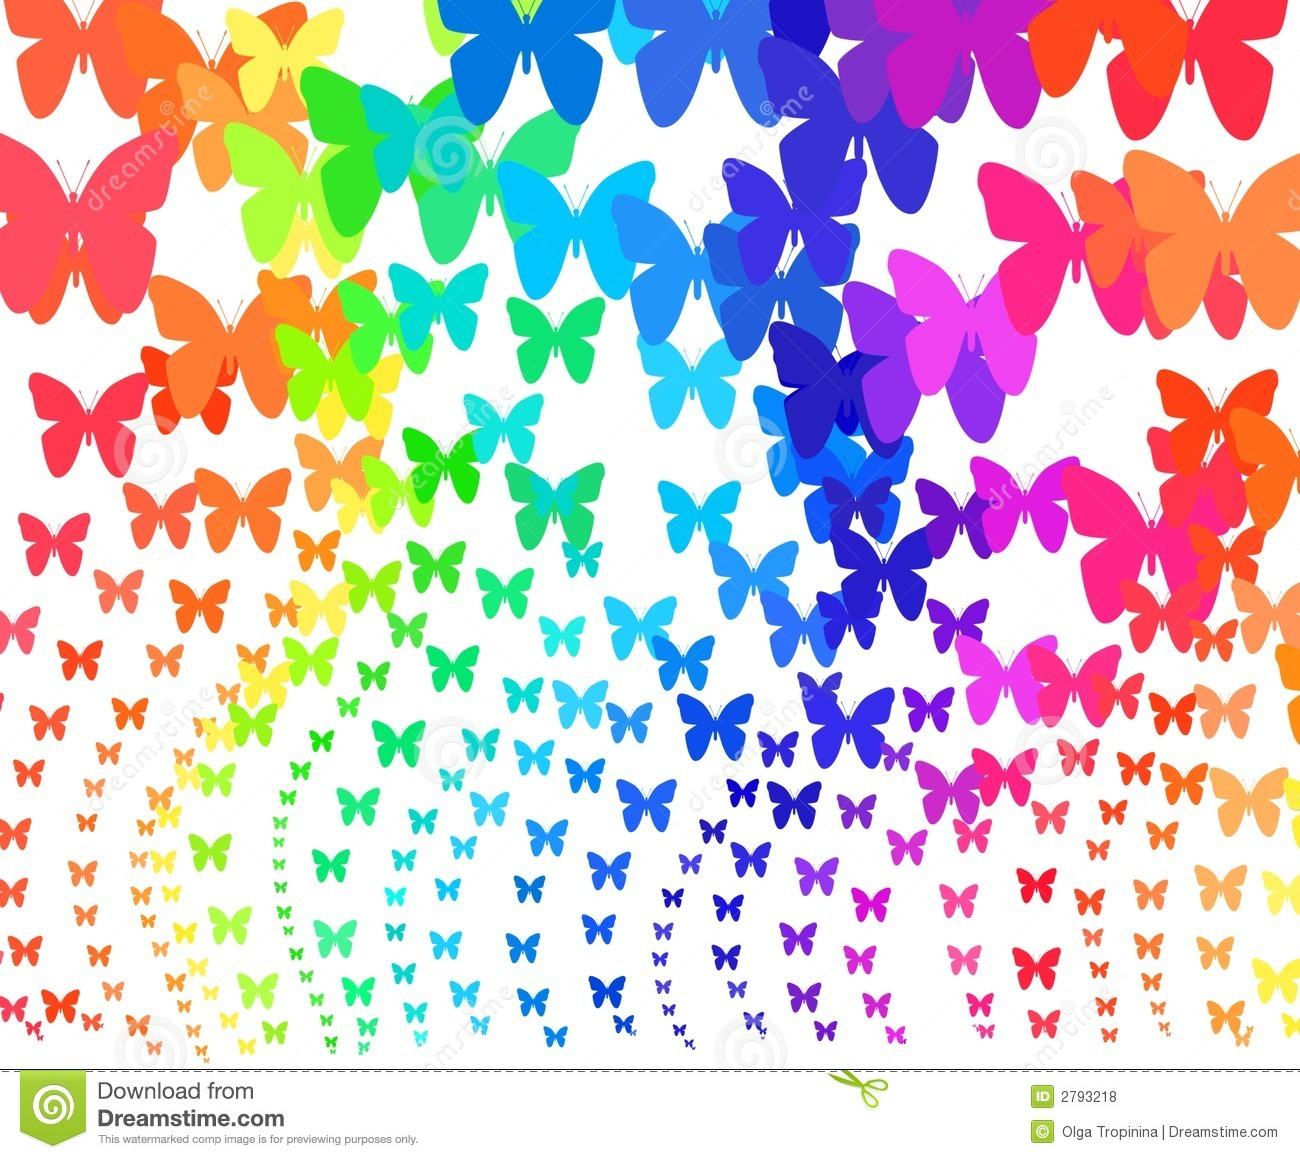 Rainbow Butterflies Royalty Free Stock Photos - Image: 2793218